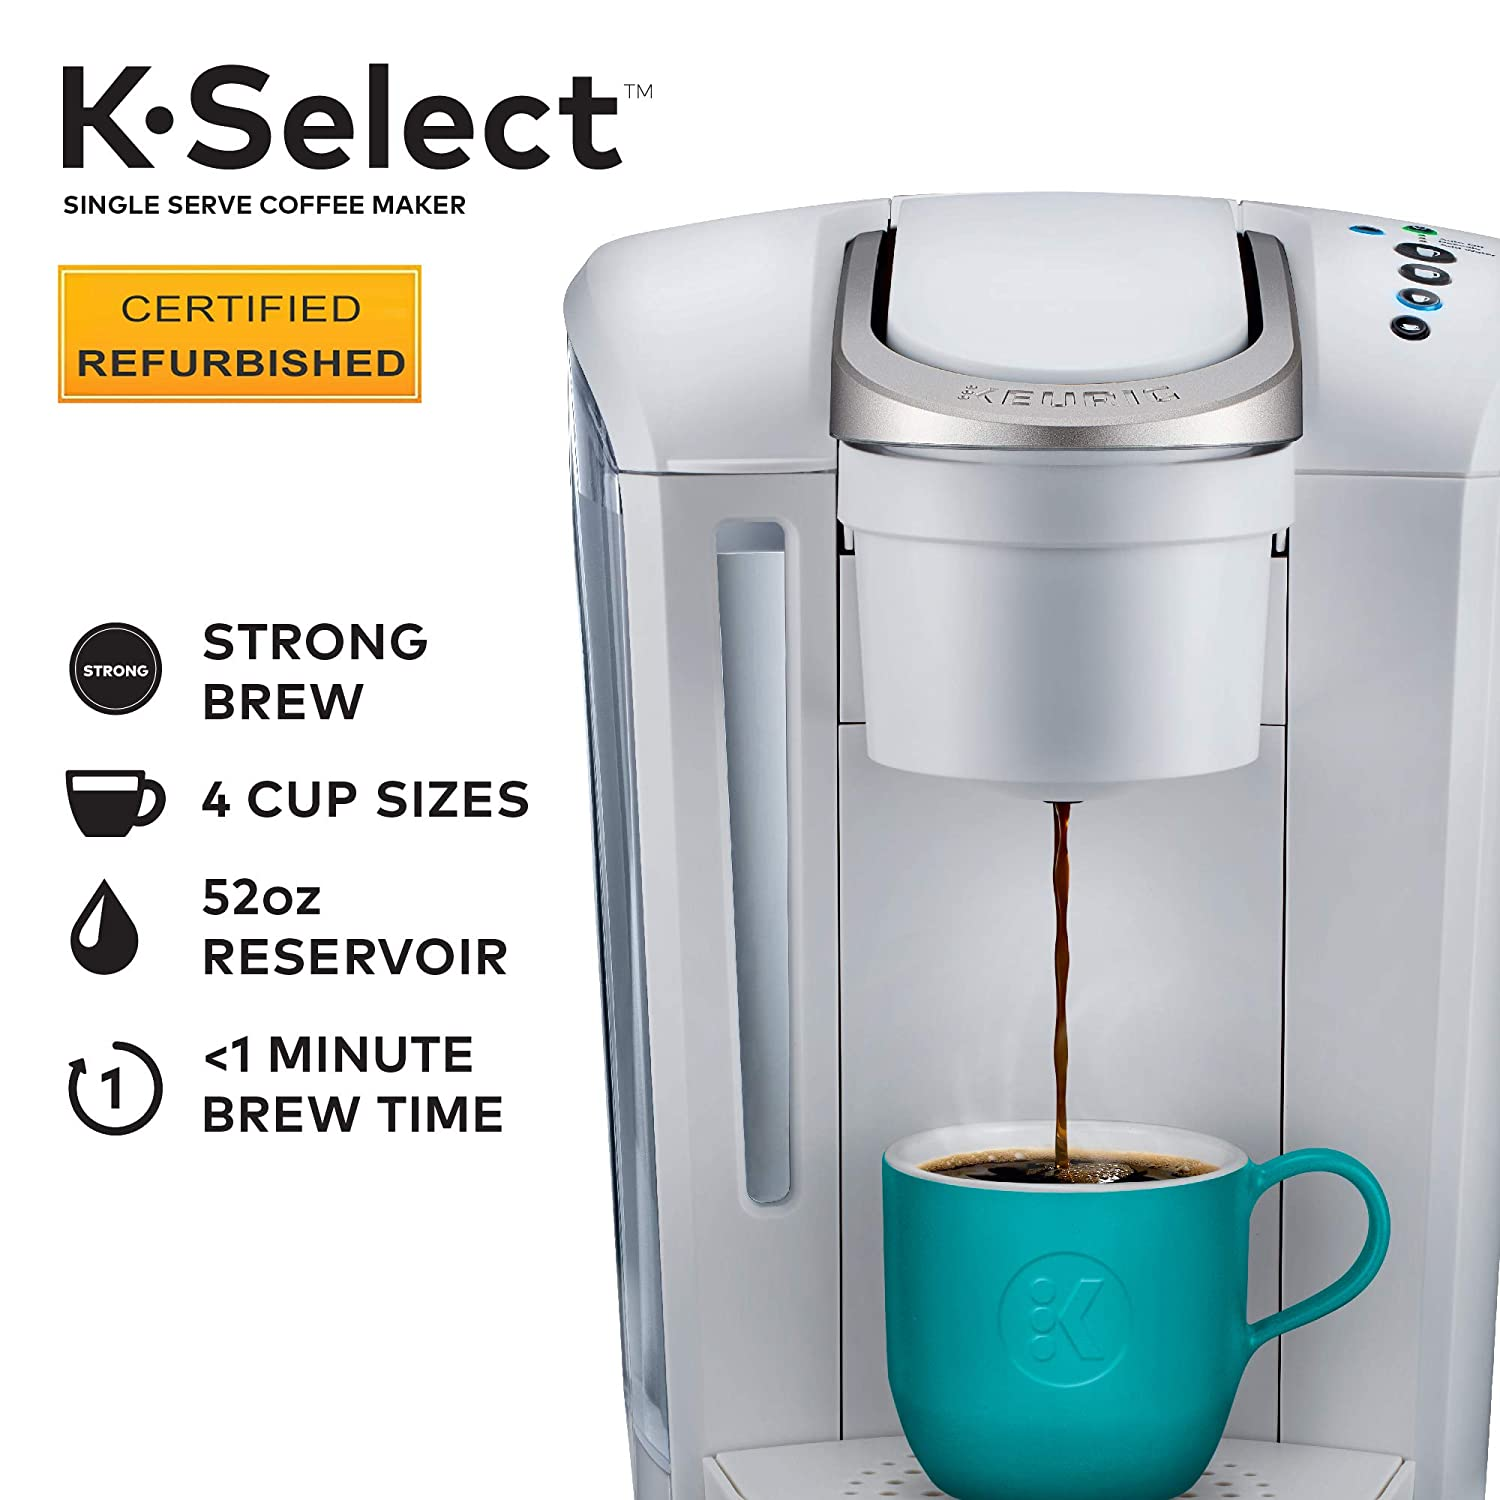 Keurig K-Select Certified Refurbished Coffee Maker, Single Serve K-Cup Pod Coffee Brewer, With Strength Control and Hot Water On Demand, Matte White